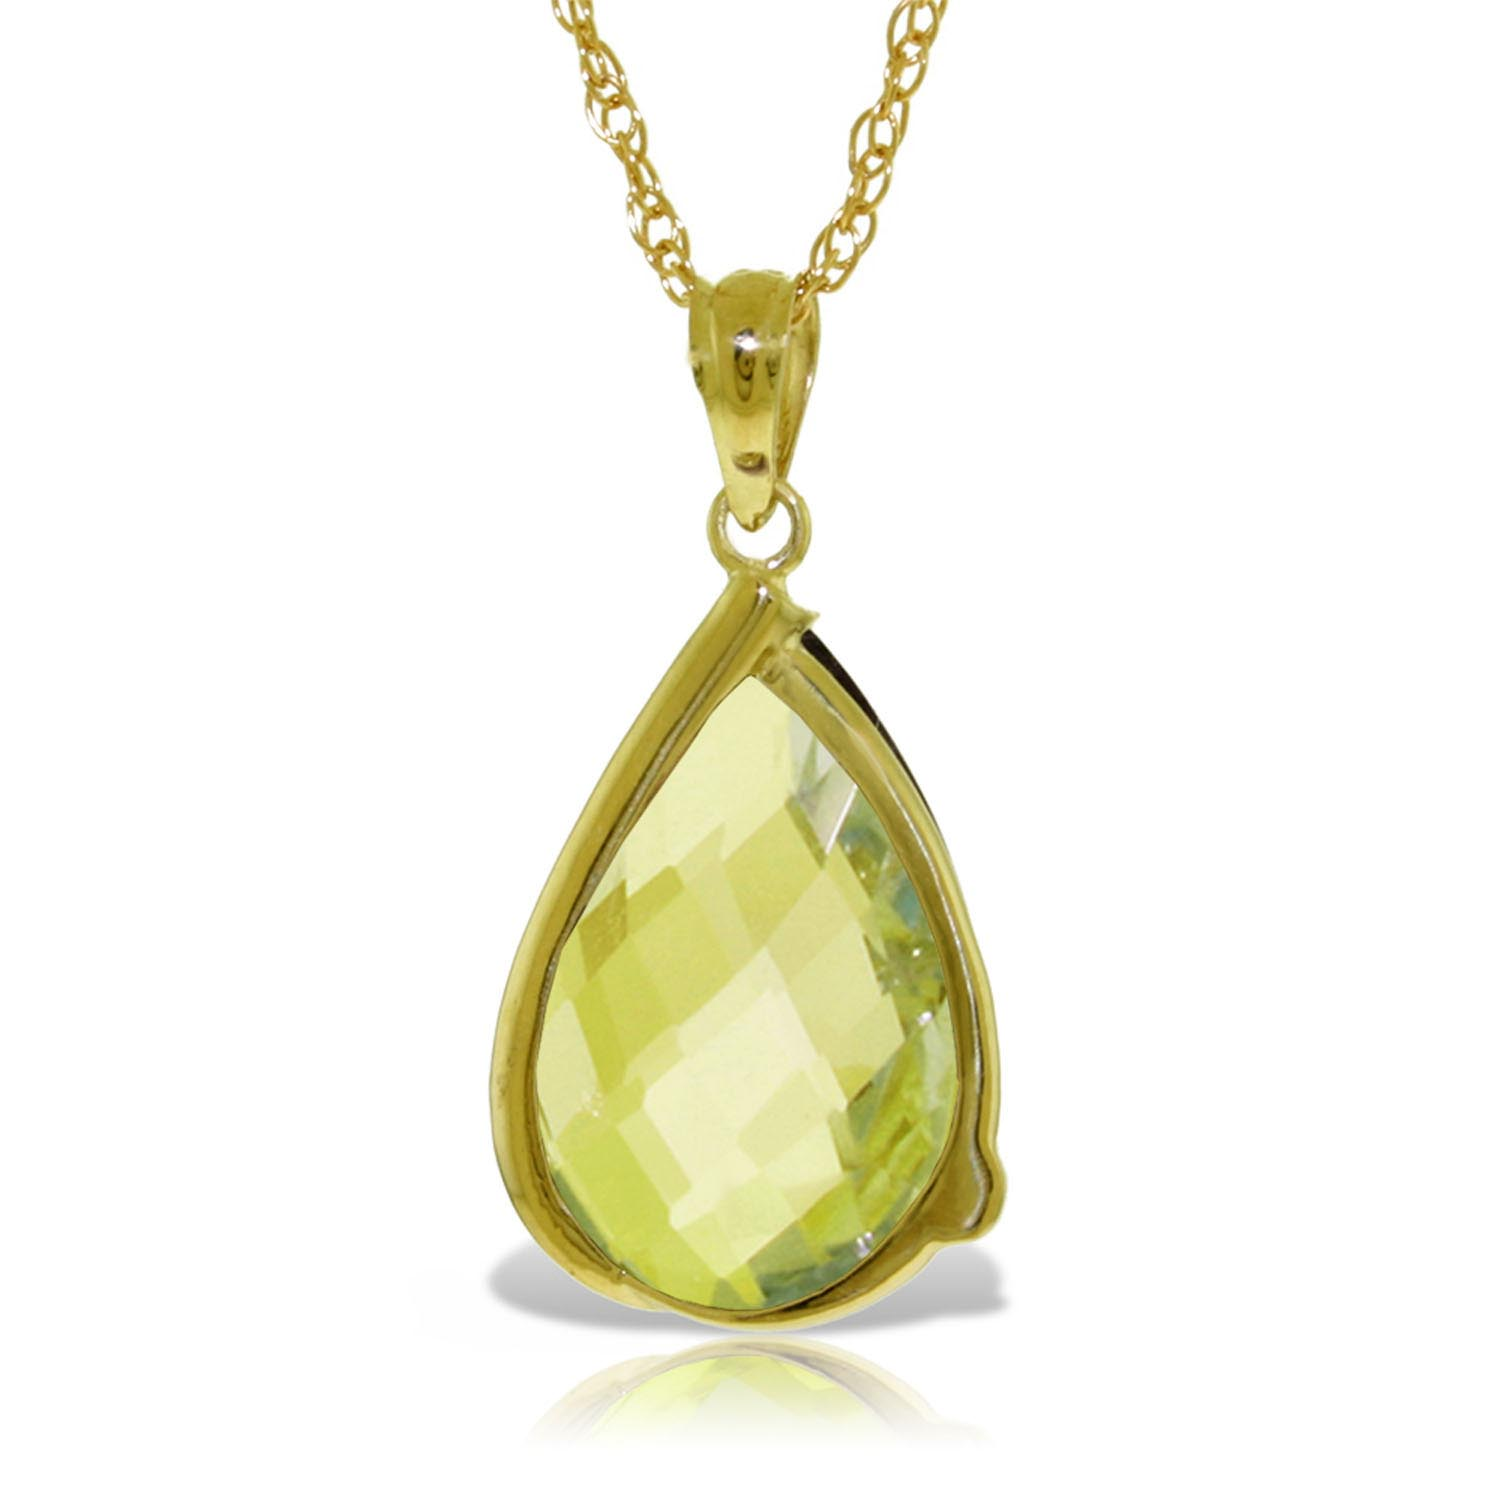 Lemon Quartz & Diamond Chequer Pendant Necklace in 9ct Gold